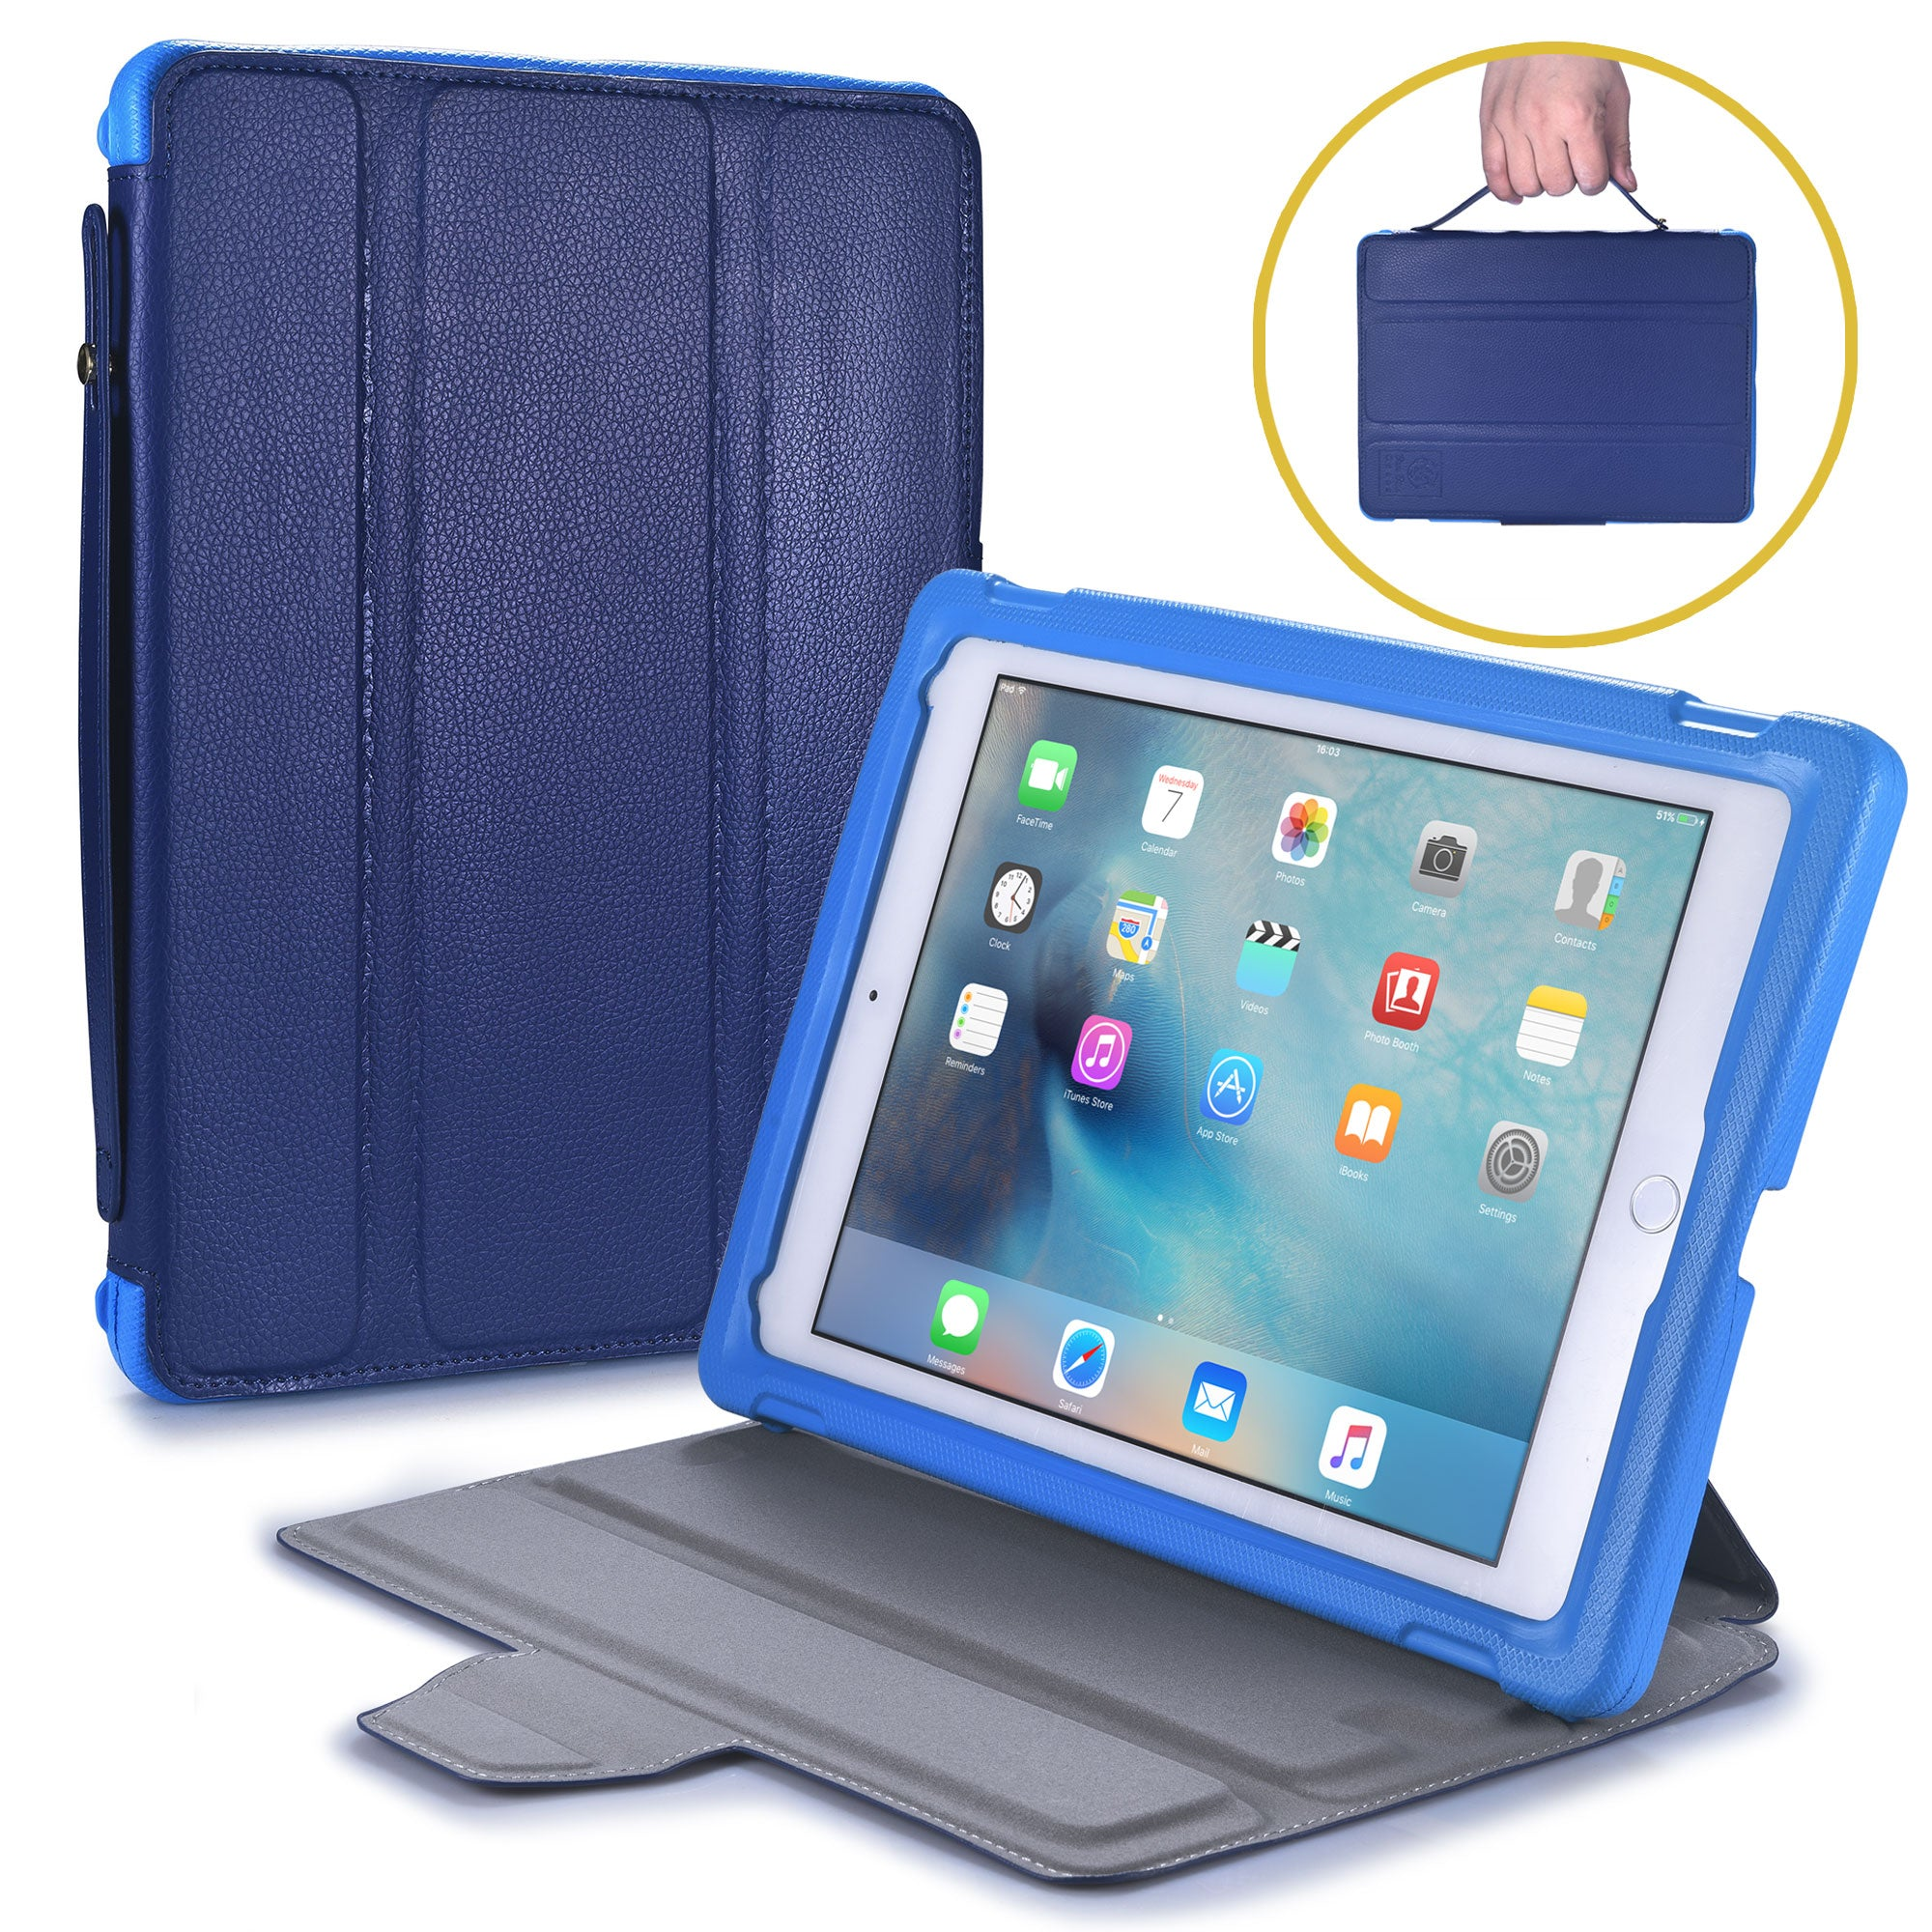 Bam Bino Box Shock Proof Case with Built-in Stand Handle for Apple iPad Pro 9.7, iPad 6, iPad 5, iPad Air 2, iPad Air 1